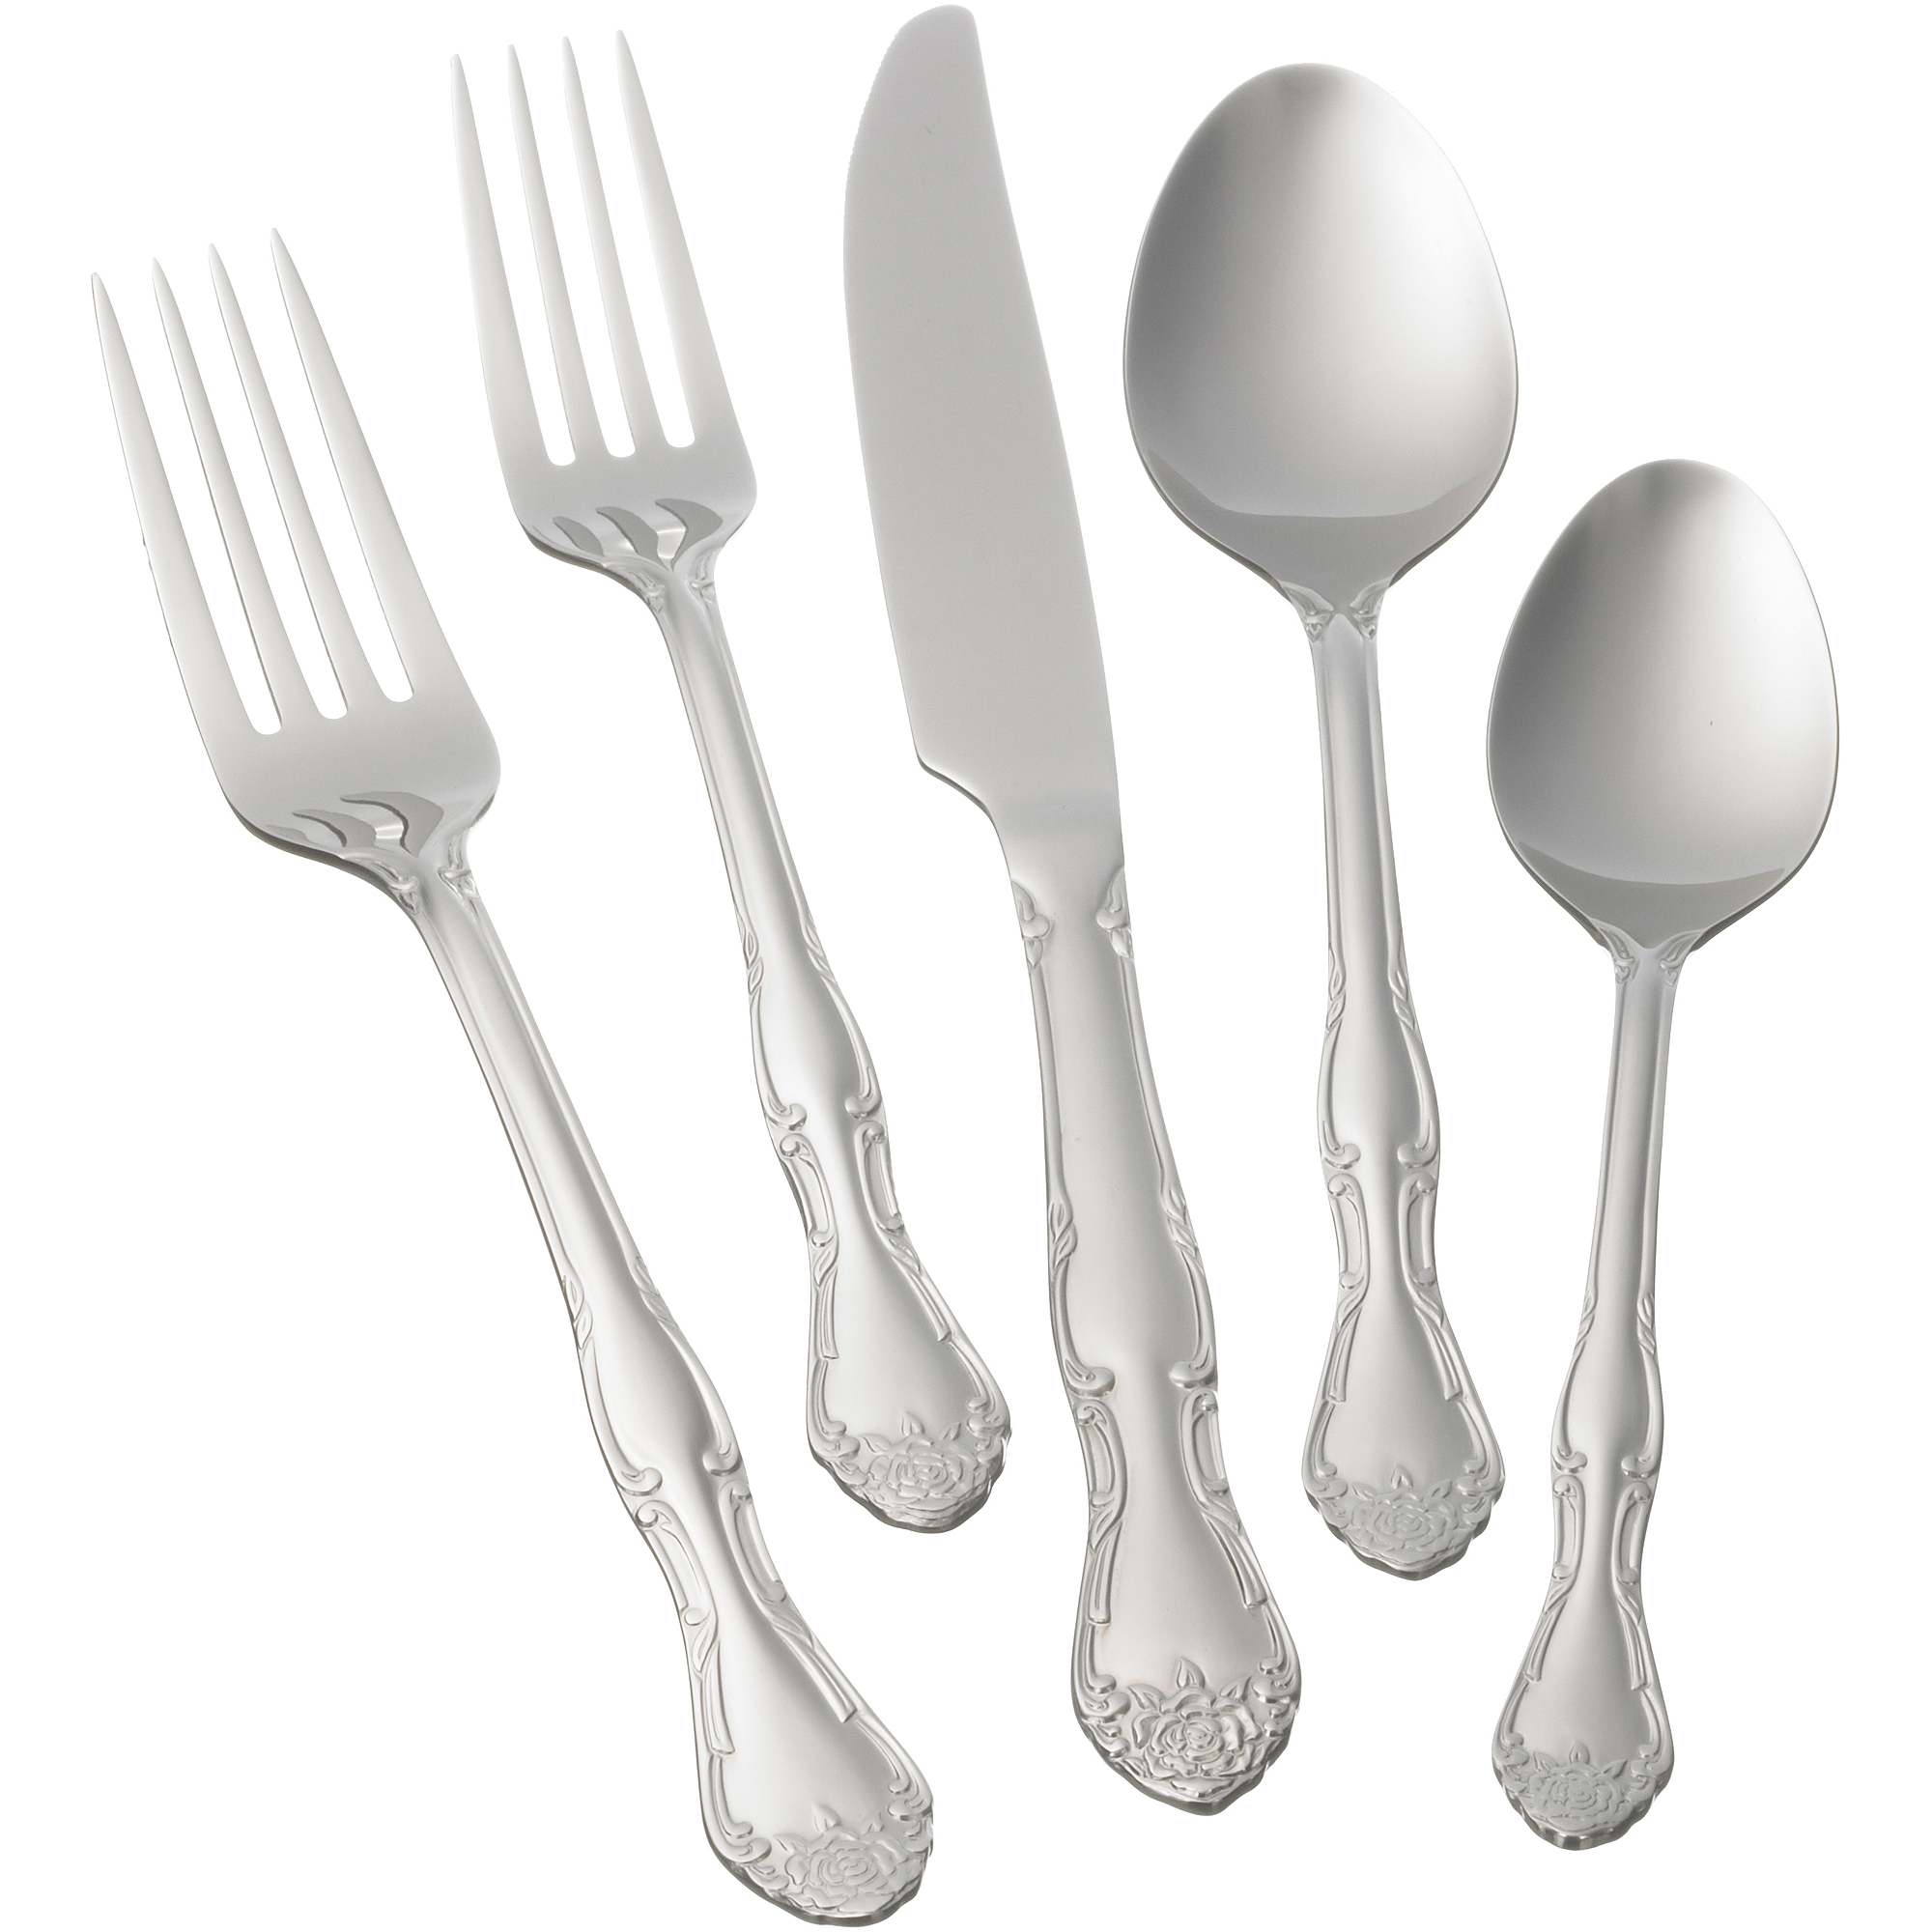 Mainstays English Rose 20-Piece Flatware Set